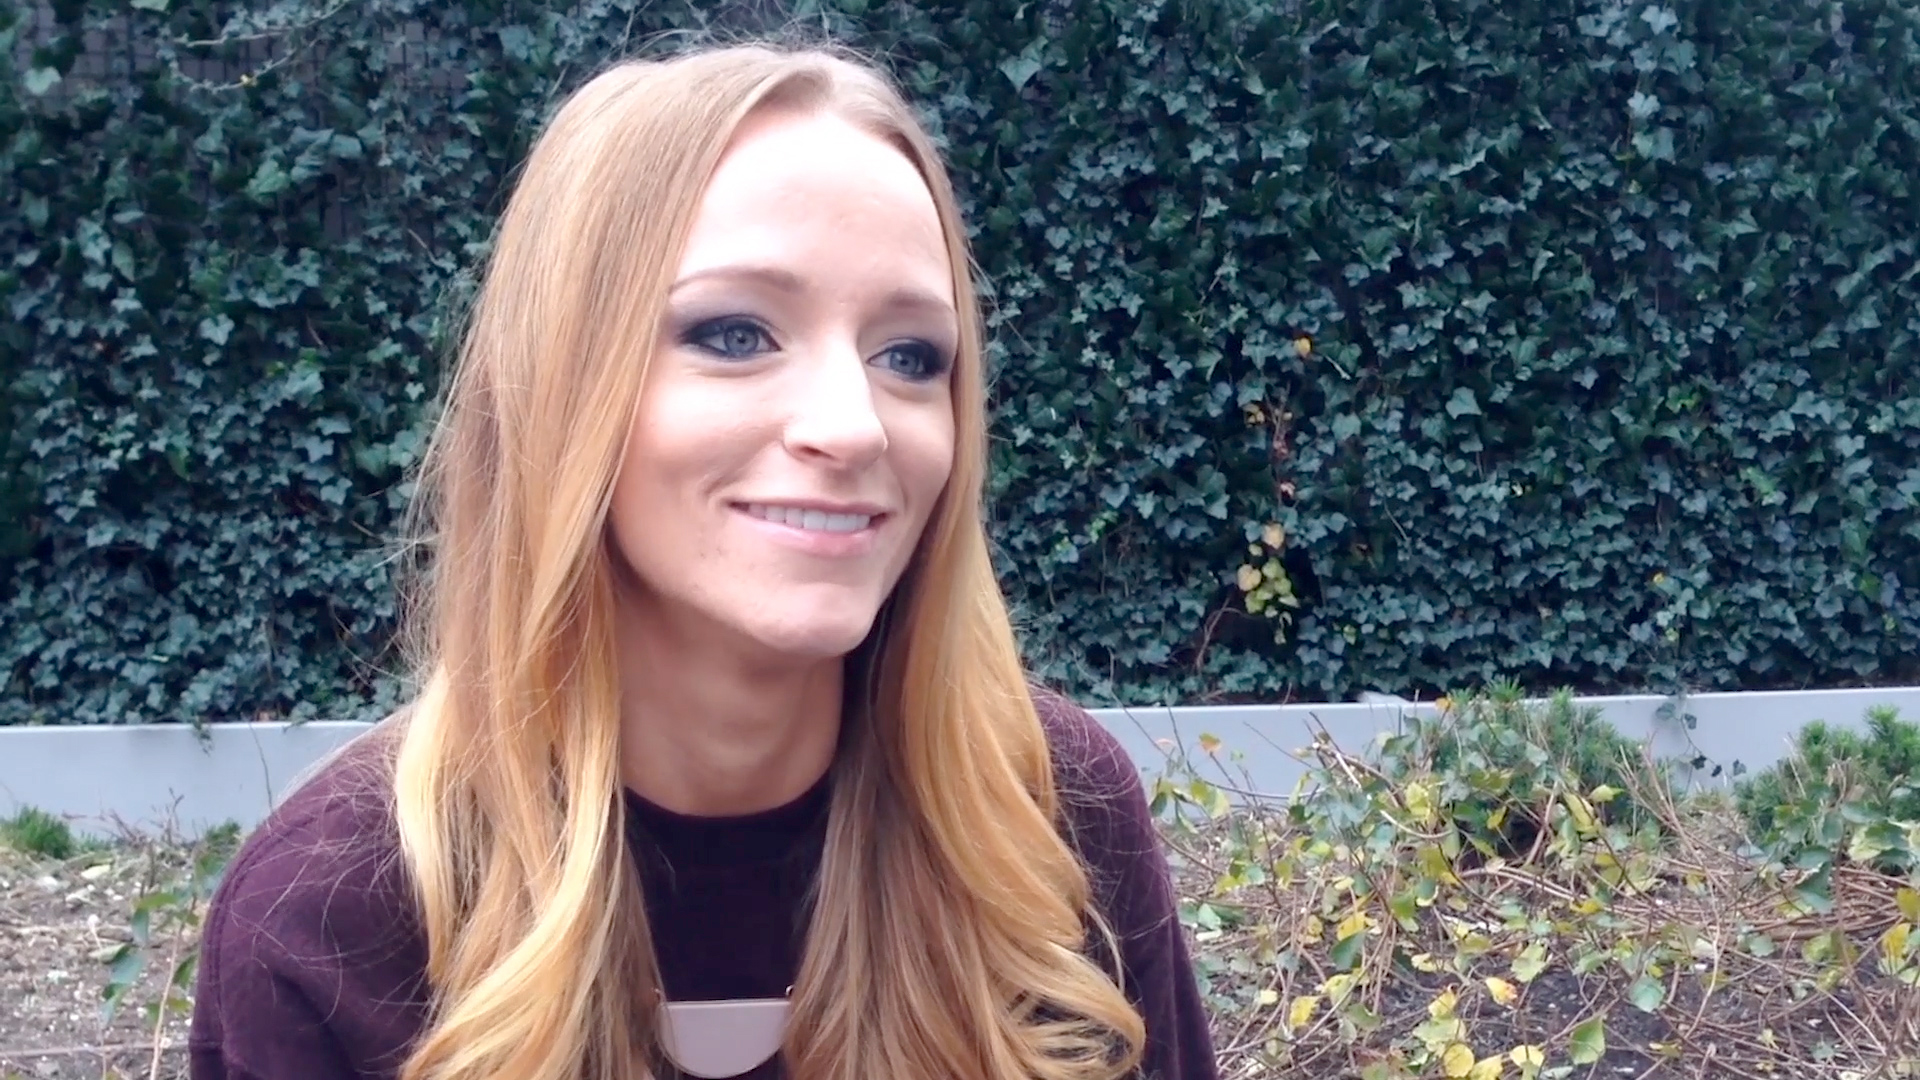 Maci Bookout Wallpapers High Resolution And Quality Download